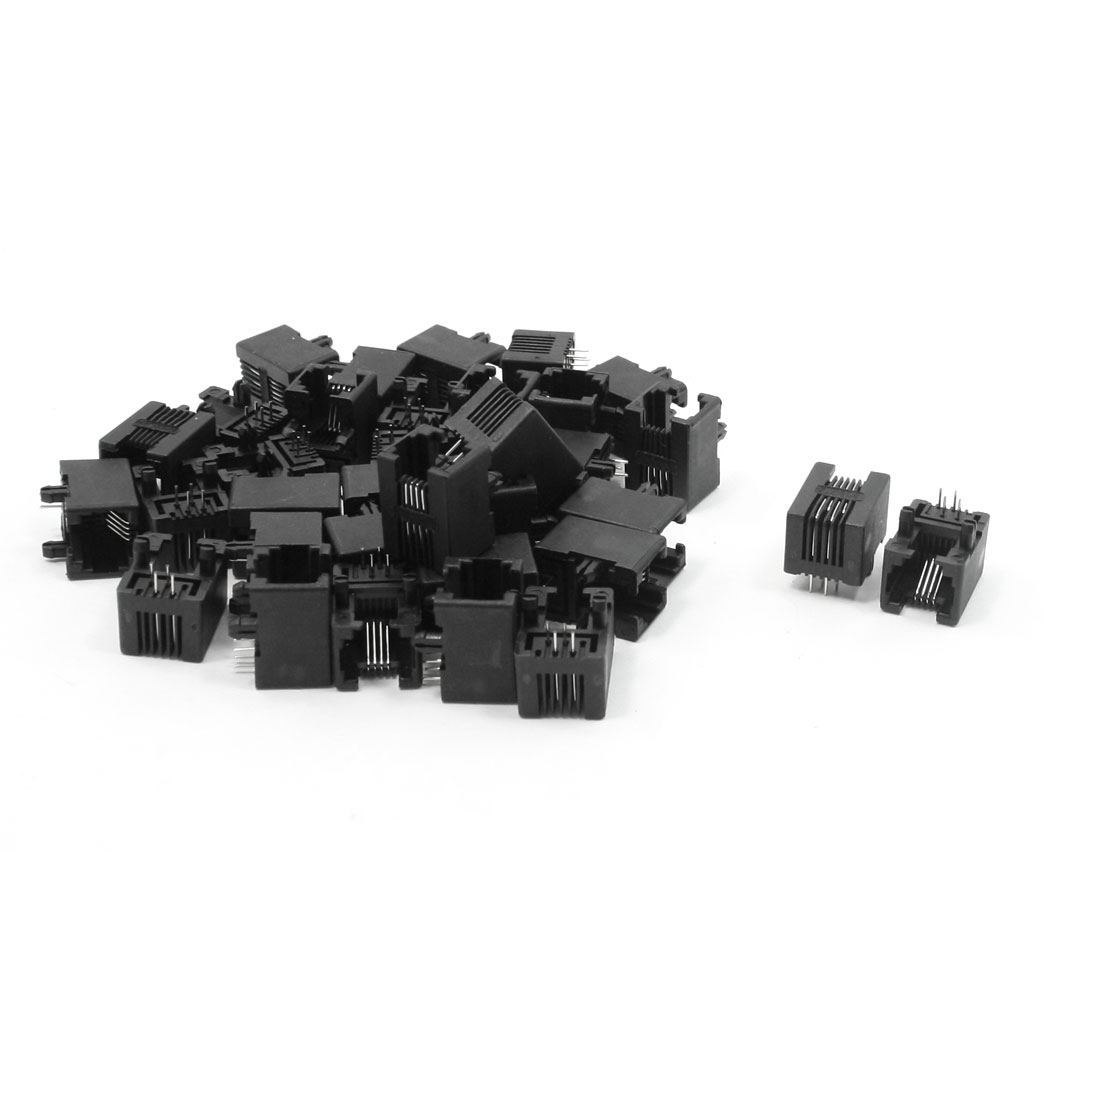 34pcs RJ11 6P4C Computer Internet Network PCB Jack Socket Black